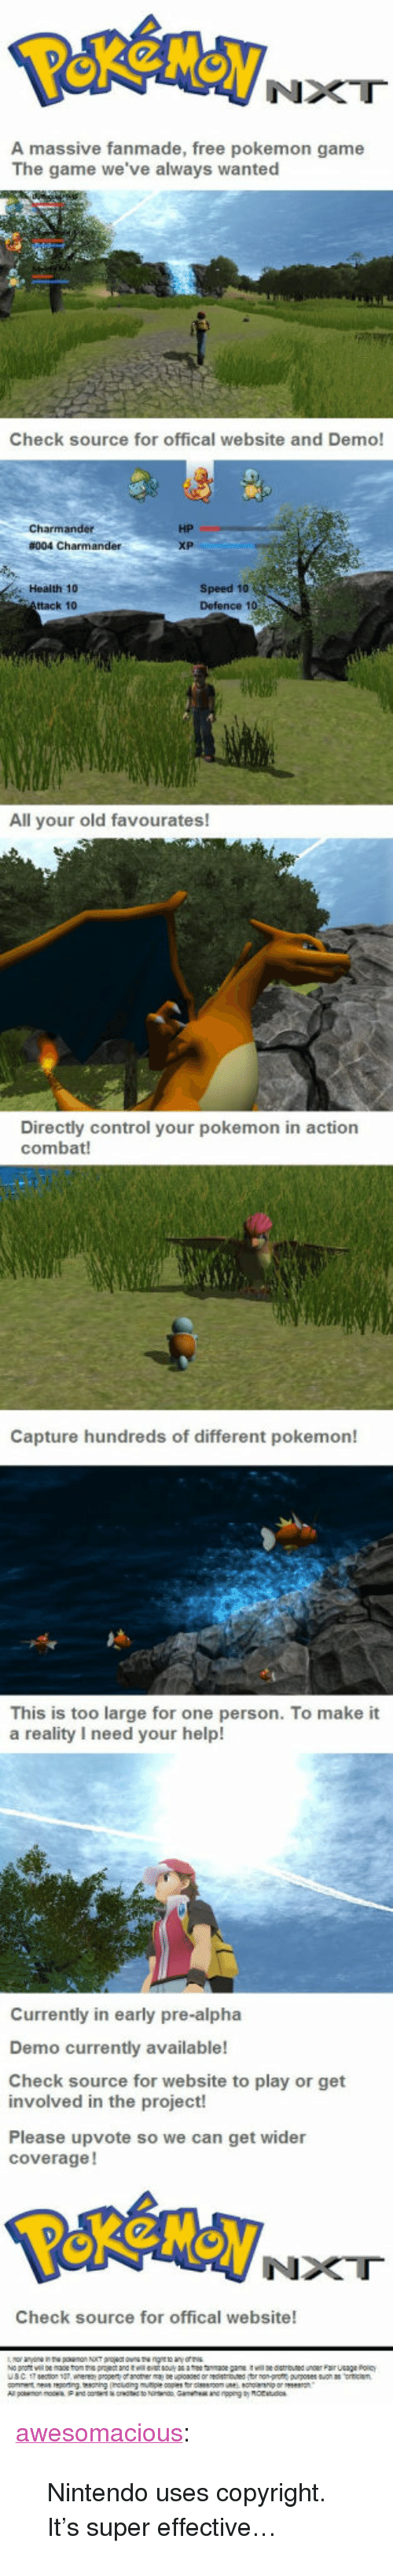 """Nintendo, Pokemon, and The Game: NXT  A massive fanmade, free pokemon game  The game we've always wanted  Check source for offical website and Demo!  HP  Health 10  ttack 10  Speed 10  Defence 1o  All your old favourates!  Directly control your pokemon in action  combat!  Capture hundreds of different pokemon!  This is too large for one person. To make it  a reality I need your help!  Currently in early pre-alpha  Demo currently available!  Check source for website to play or get  involved in the project!  Please upvote so we can get wider  coverage!  NXT  Check source for offical website! <p><a href=""""http://awesomacious.tumblr.com/post/170509369134/nintendo-uses-copyright-its-super-effective"""" class=""""tumblr_blog"""">awesomacious</a>:</p>  <blockquote><p>Nintendo uses copyright. It's super effective…</p></blockquote>"""